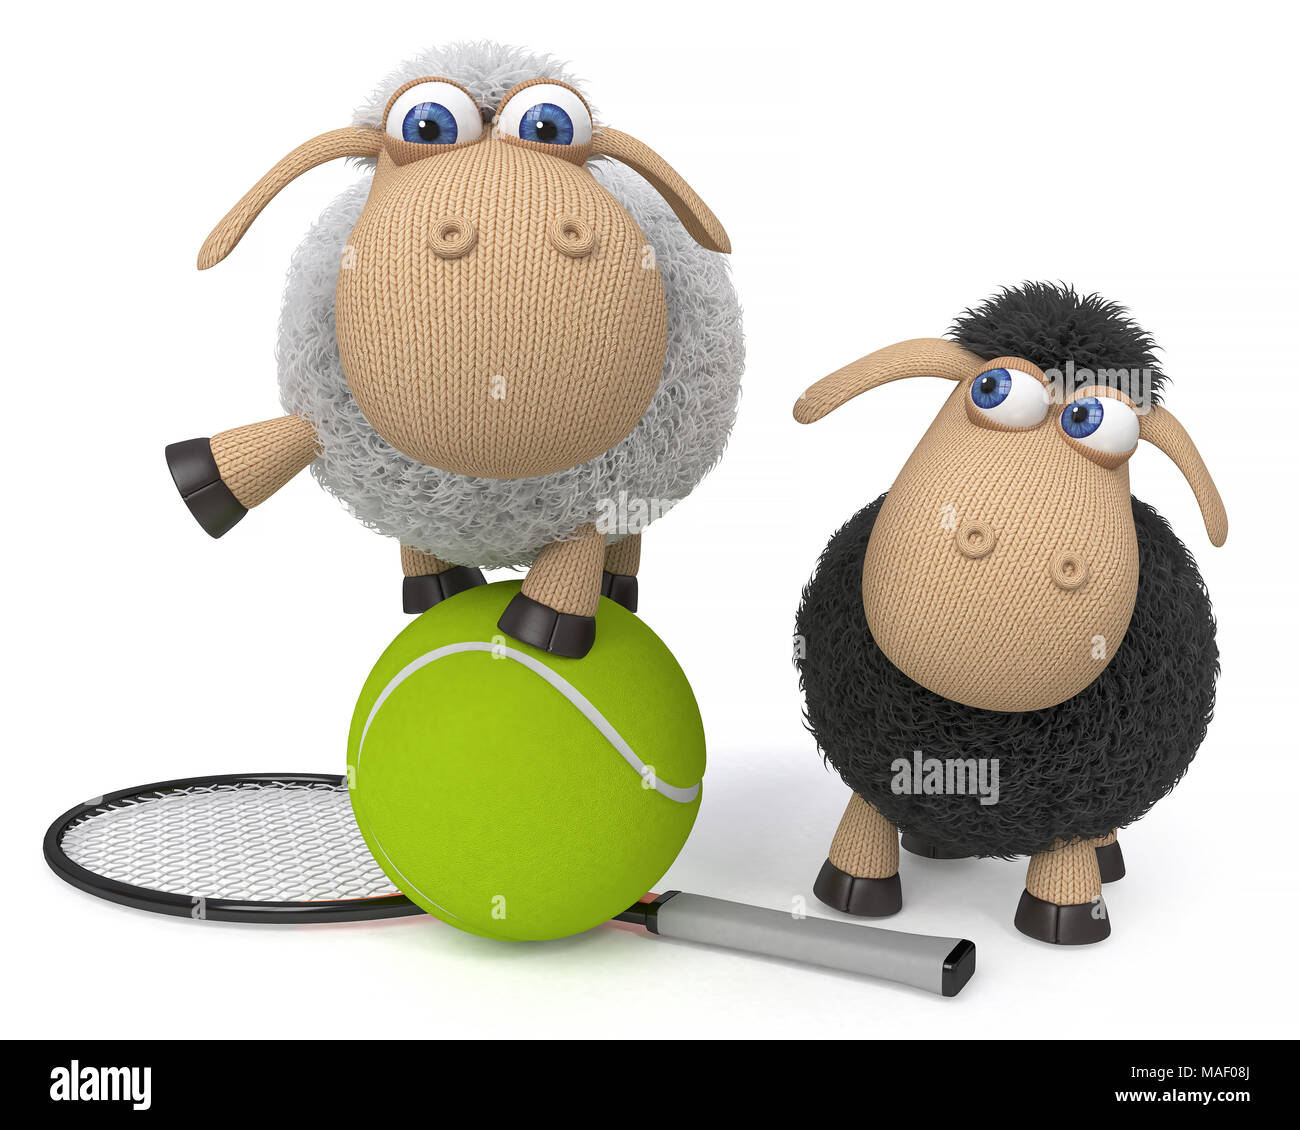 3d illustration funny fluffy sheep do different things/ fluffy farm animals amuse themselves - Stock Image